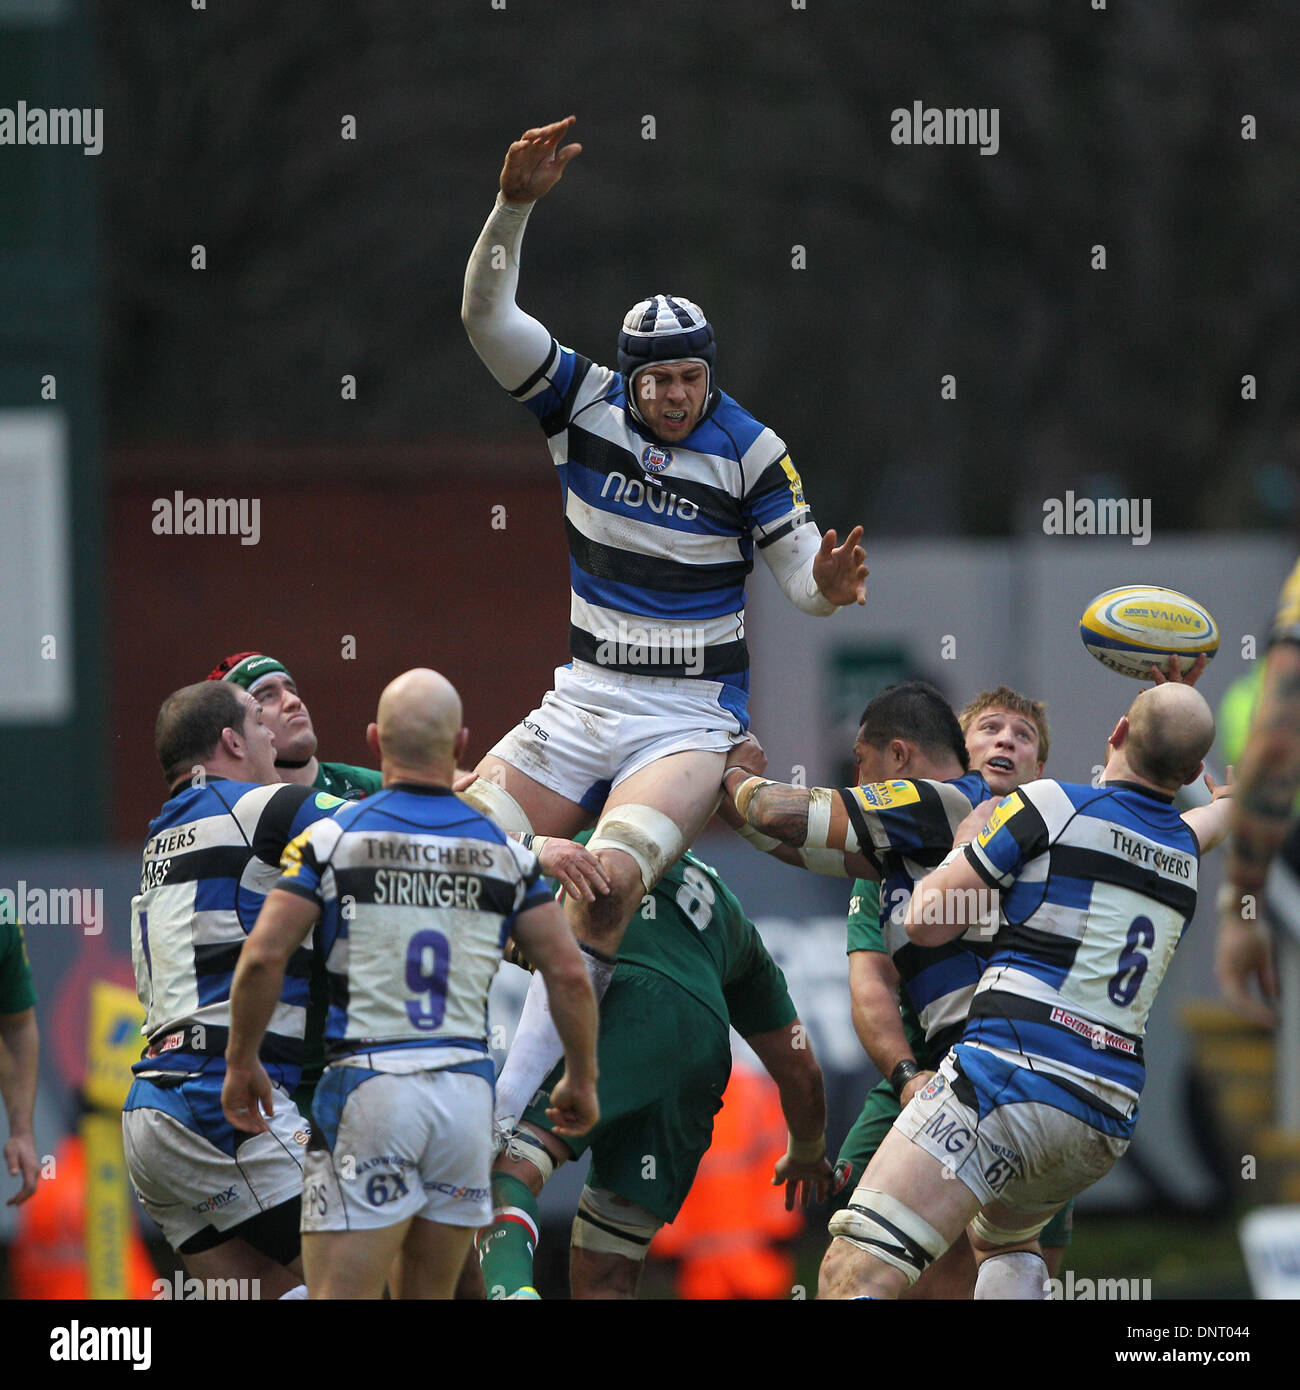 Leicester, UK. 05th Jan, 2014. Dave Attwood (Bath) wins the line out during the Aviva Premiership game between Leicester Tigers and Bath Rugby from Welford Road. Credit:  Action Plus Sports/Alamy Live News - Stock Image